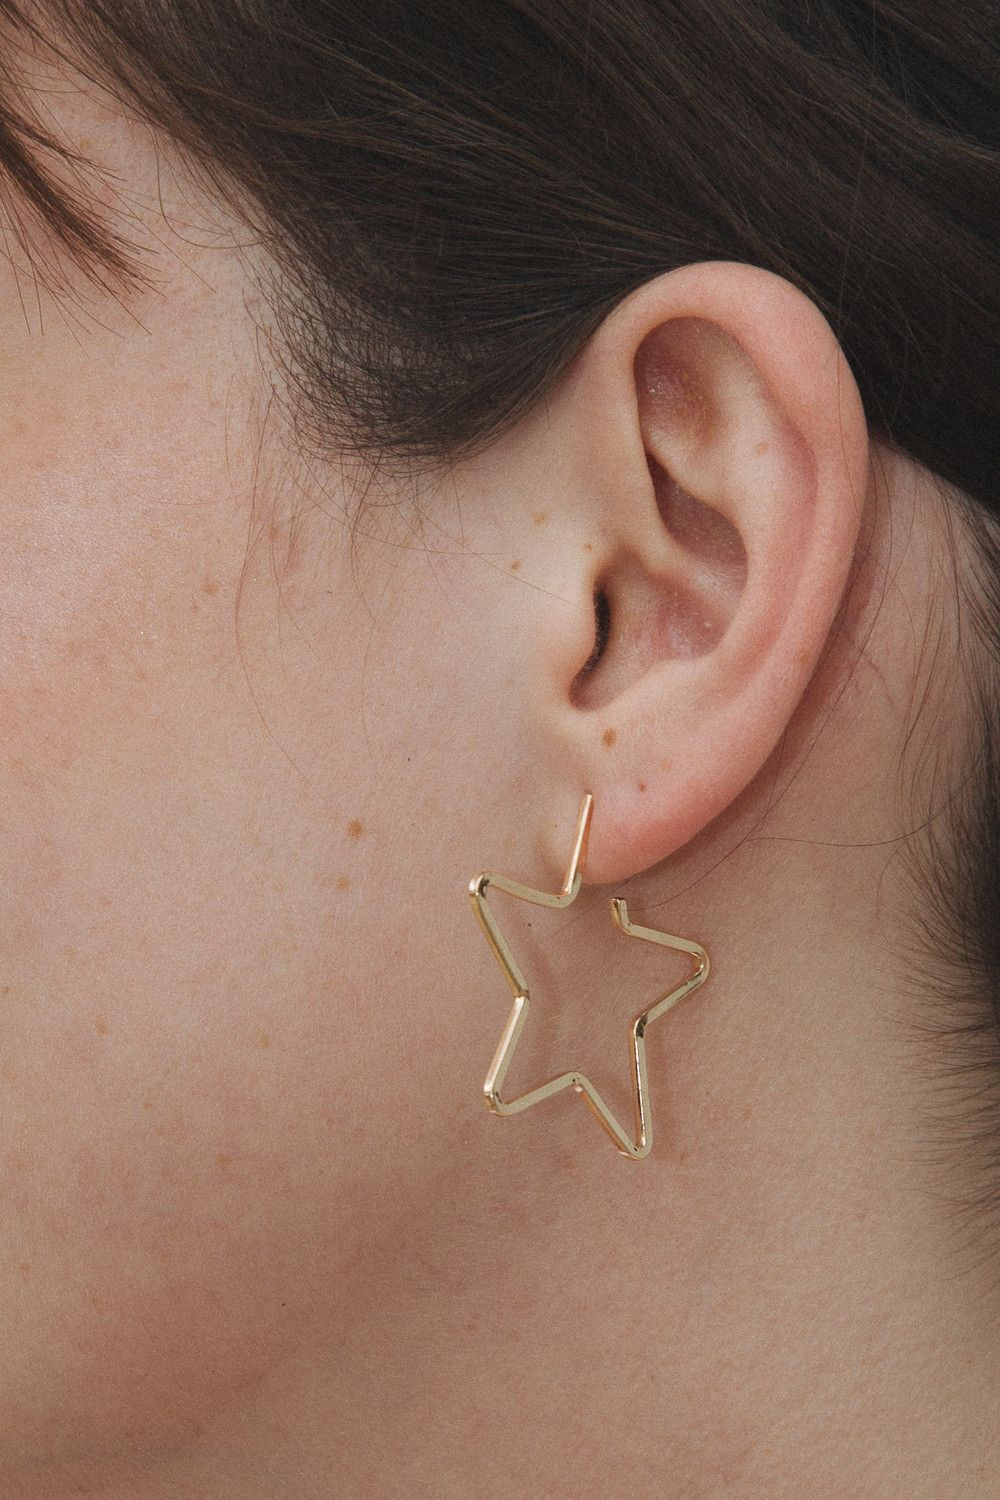 e6e7feab0 Gold Star Earring in 2019 | FASHION | Jewelry, Star earrings ...